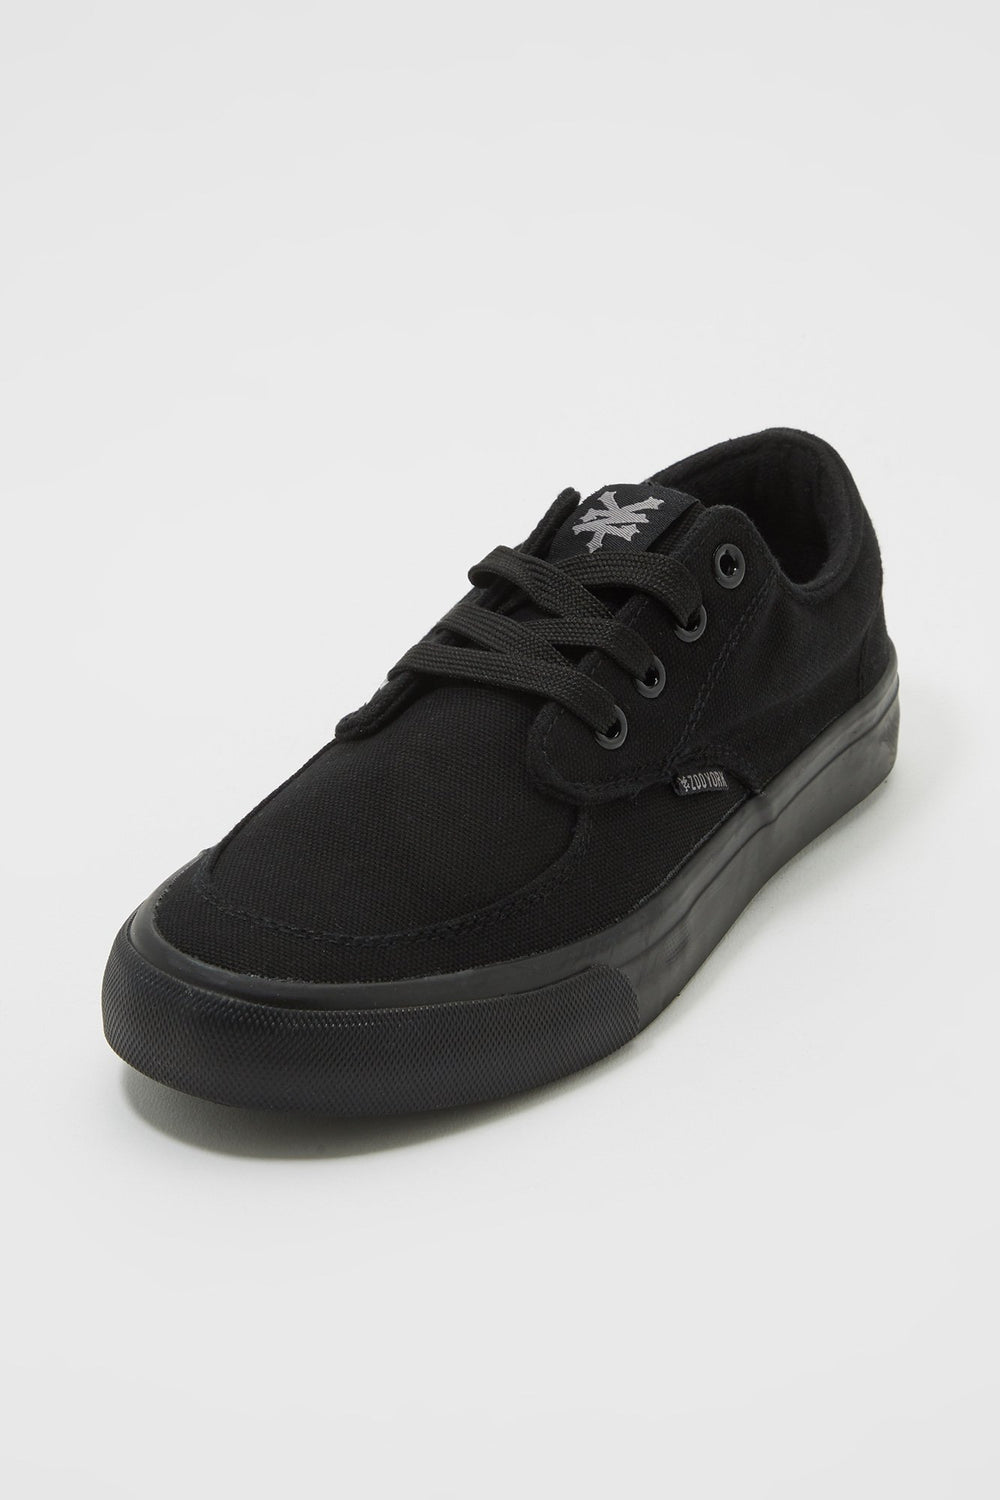 Zoo York Mens Ryan Canvas Shoes Black